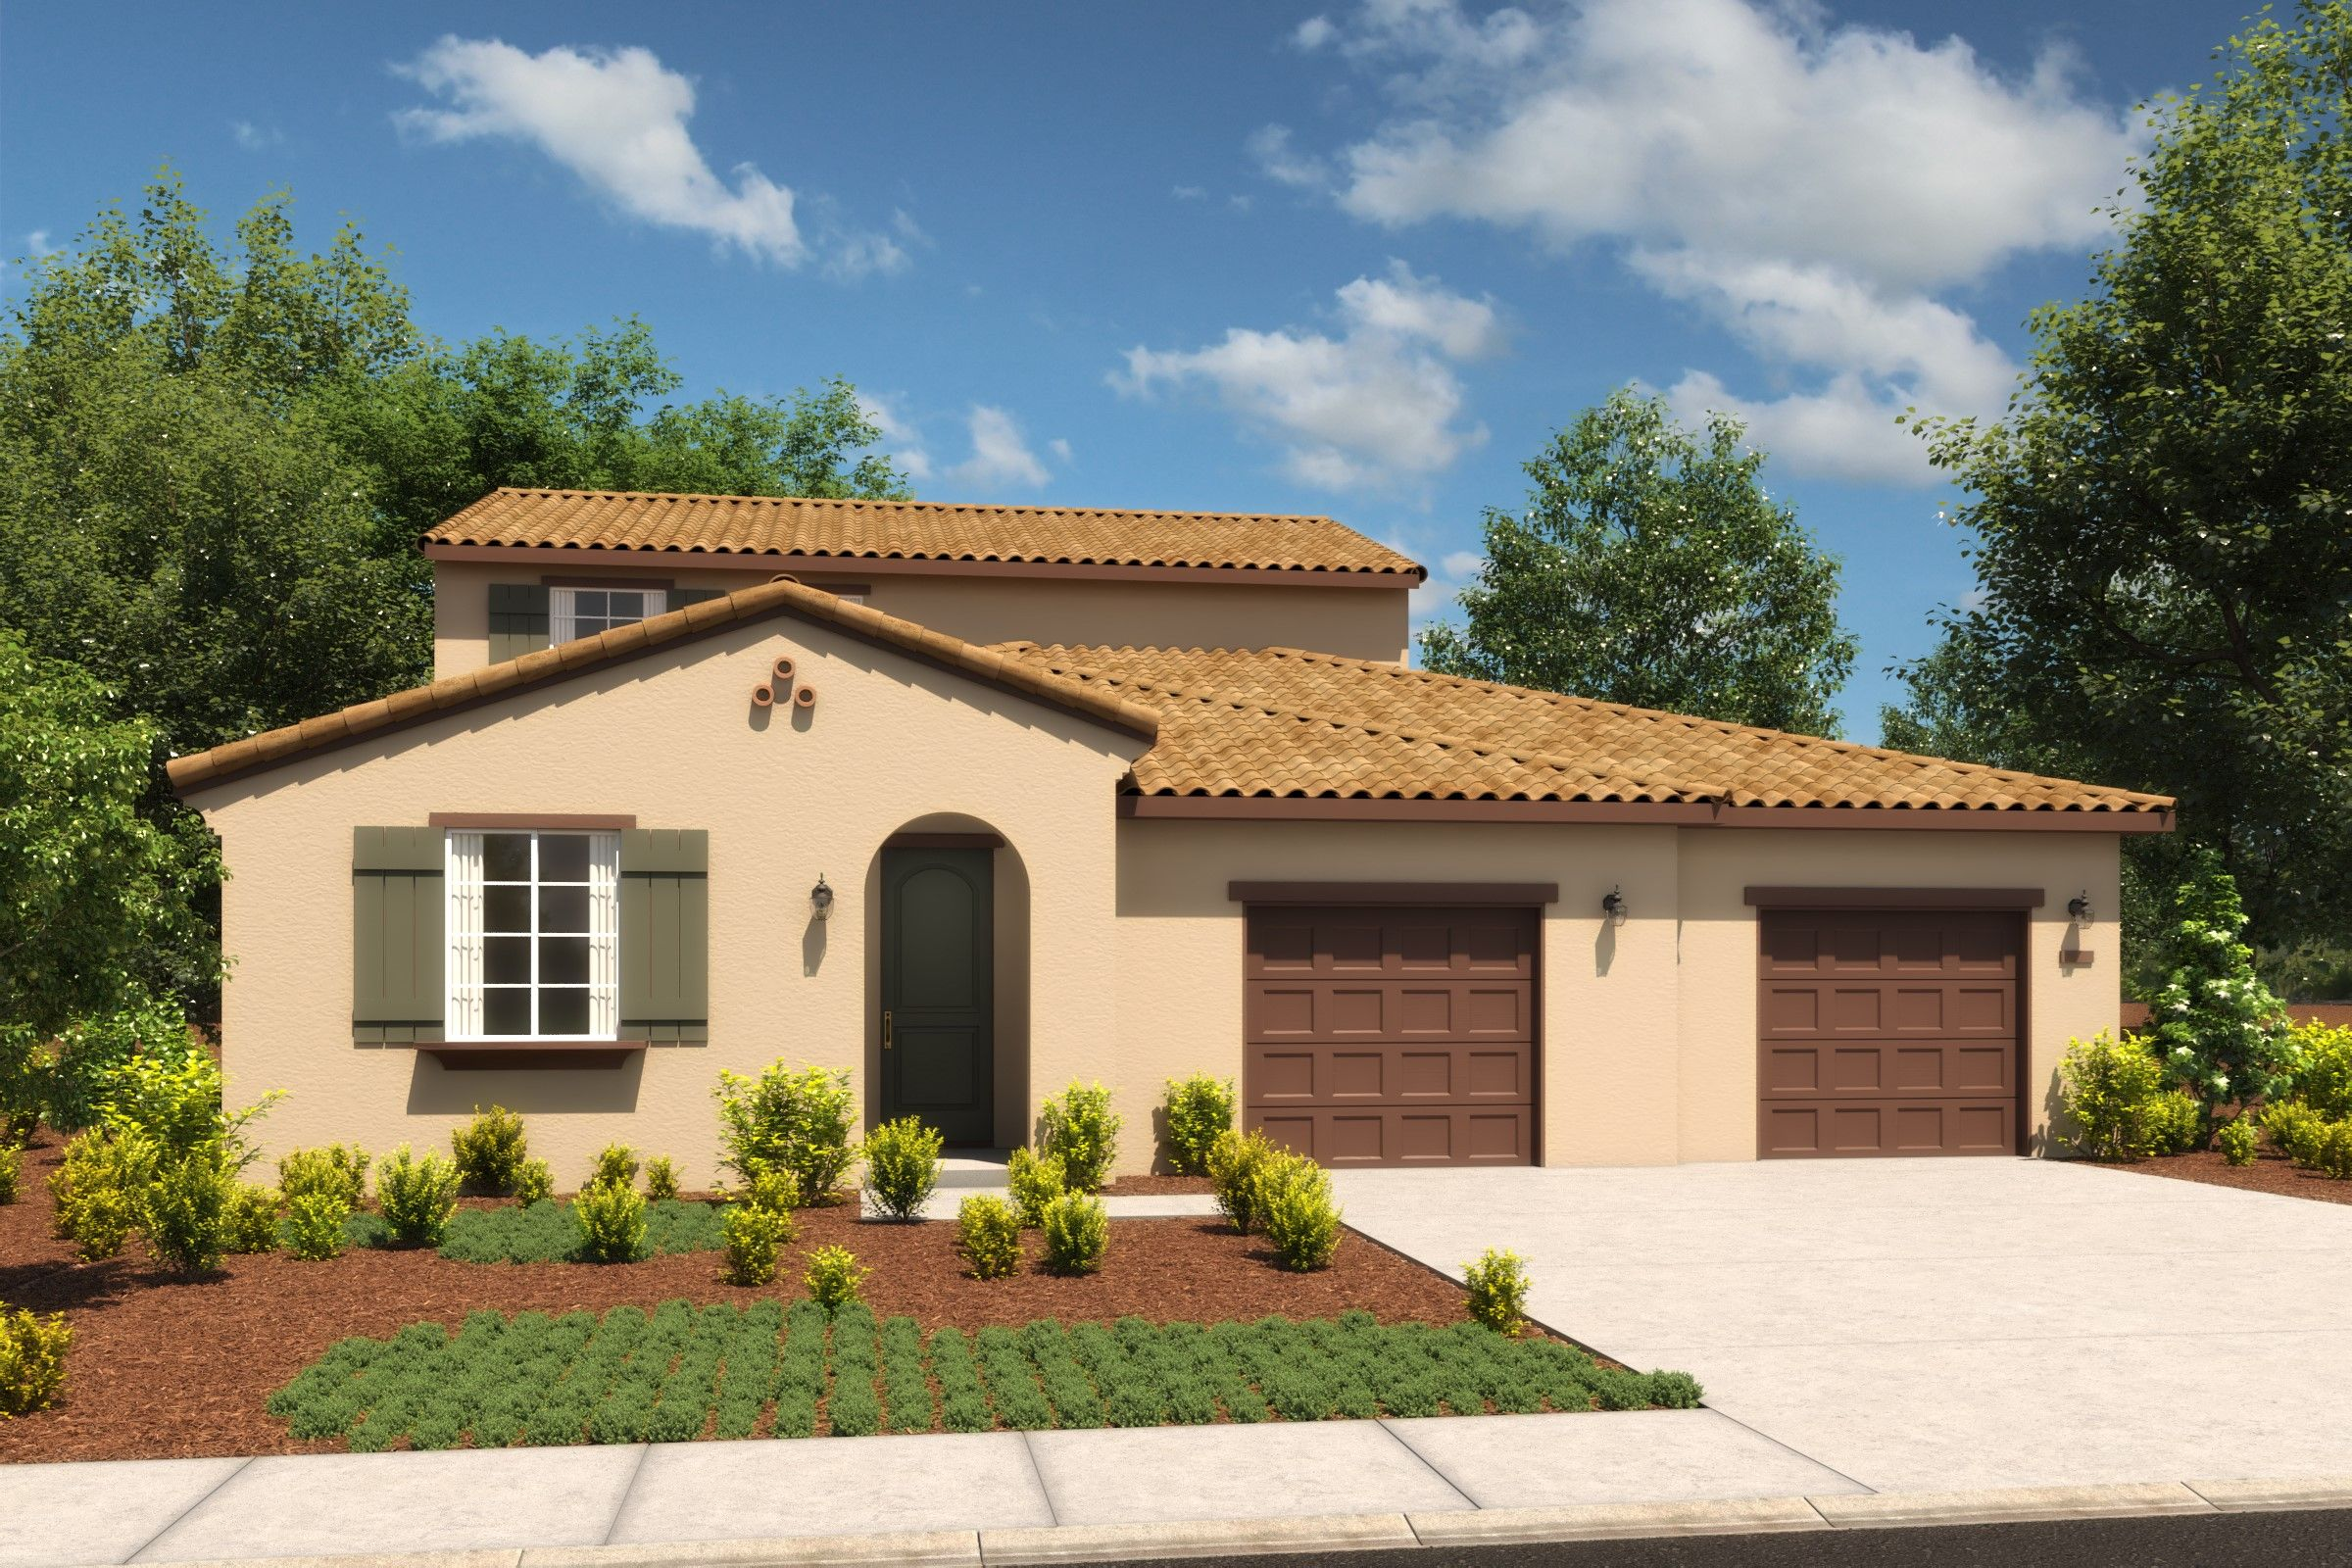 Single Family for Active at Riverview At Monterra - Rose Wild Horse Road & Goode Street Antioch, California 94531 United States